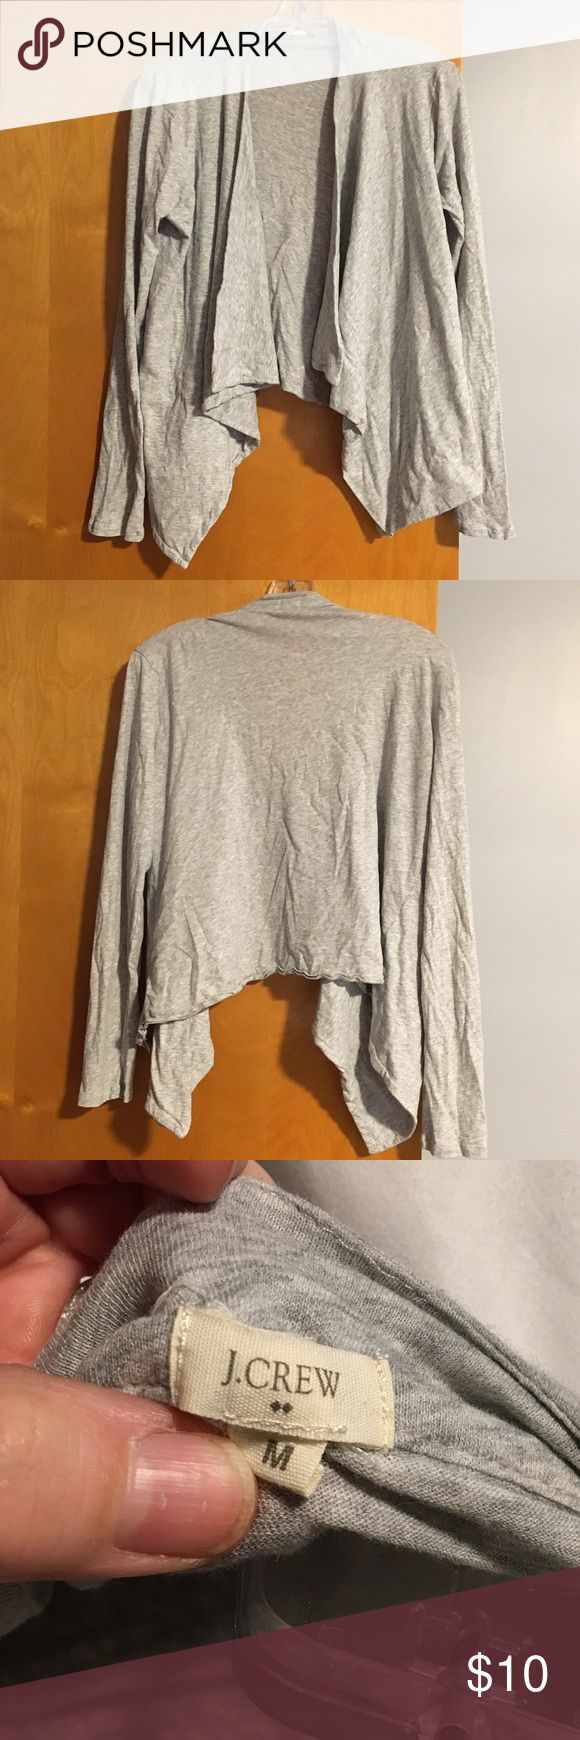 JCrew Open Front Cardigan ~ M Short cardigan with open flowing front. Great with jeans and a came. Longer in front then in the back. Super soft and comfy material. Only worn a hand full of times. J. Crew Sweaters Cardigans